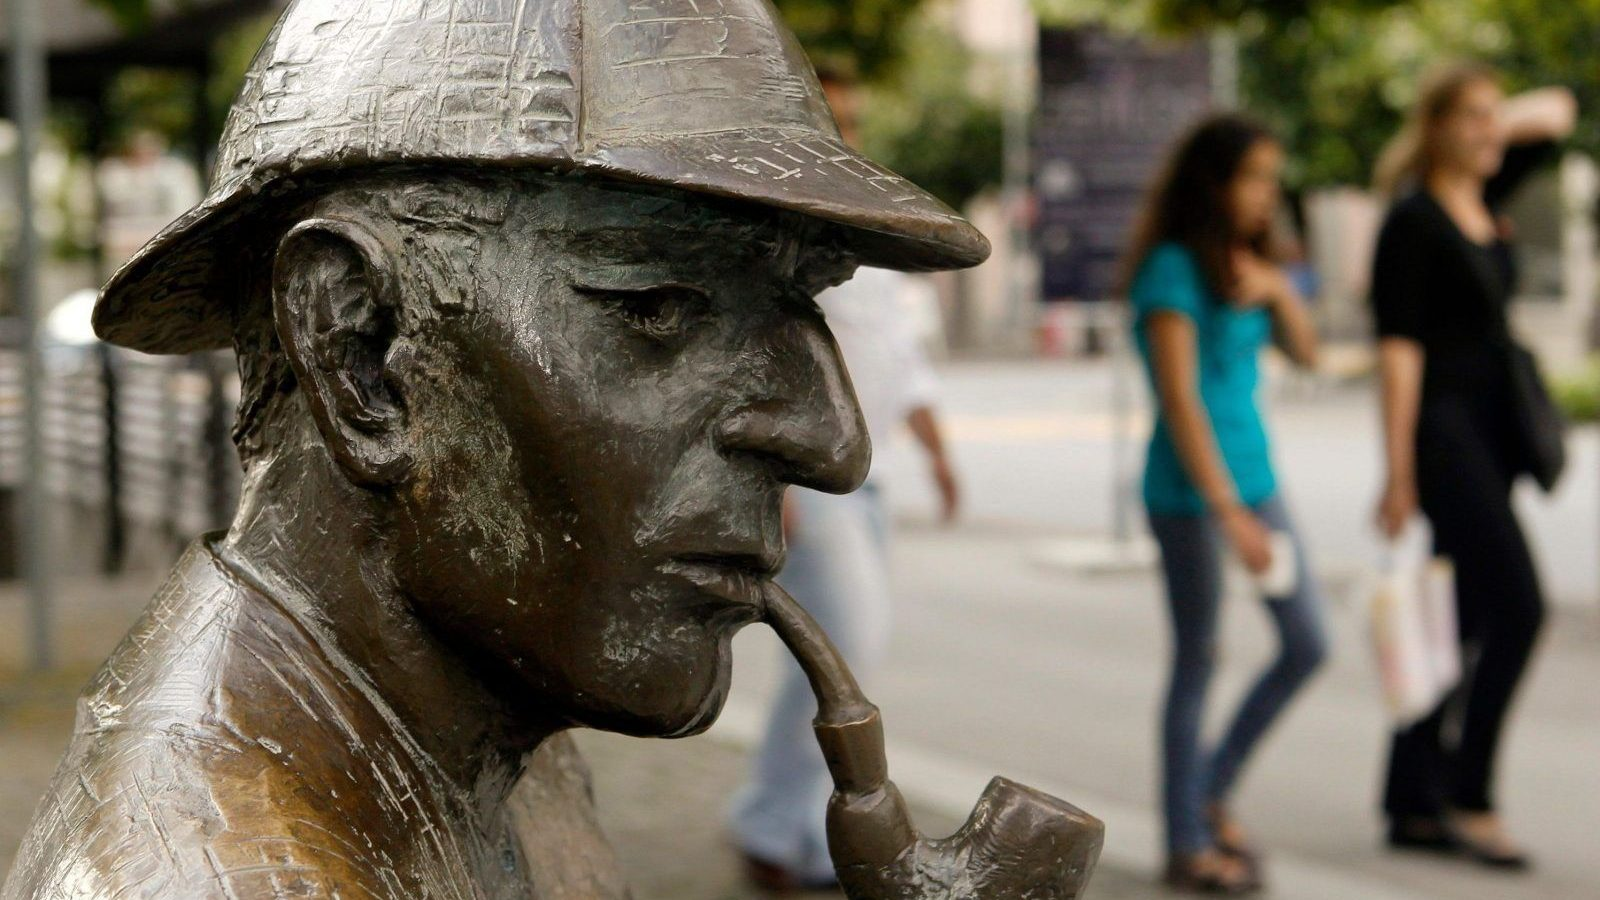 A life-size bronze figure of British author Arthur Conan Doyle's character, the detective Sherlock Holmes created by artist John Doubleday 1988 is pictured on the main square in the town of Meiringen